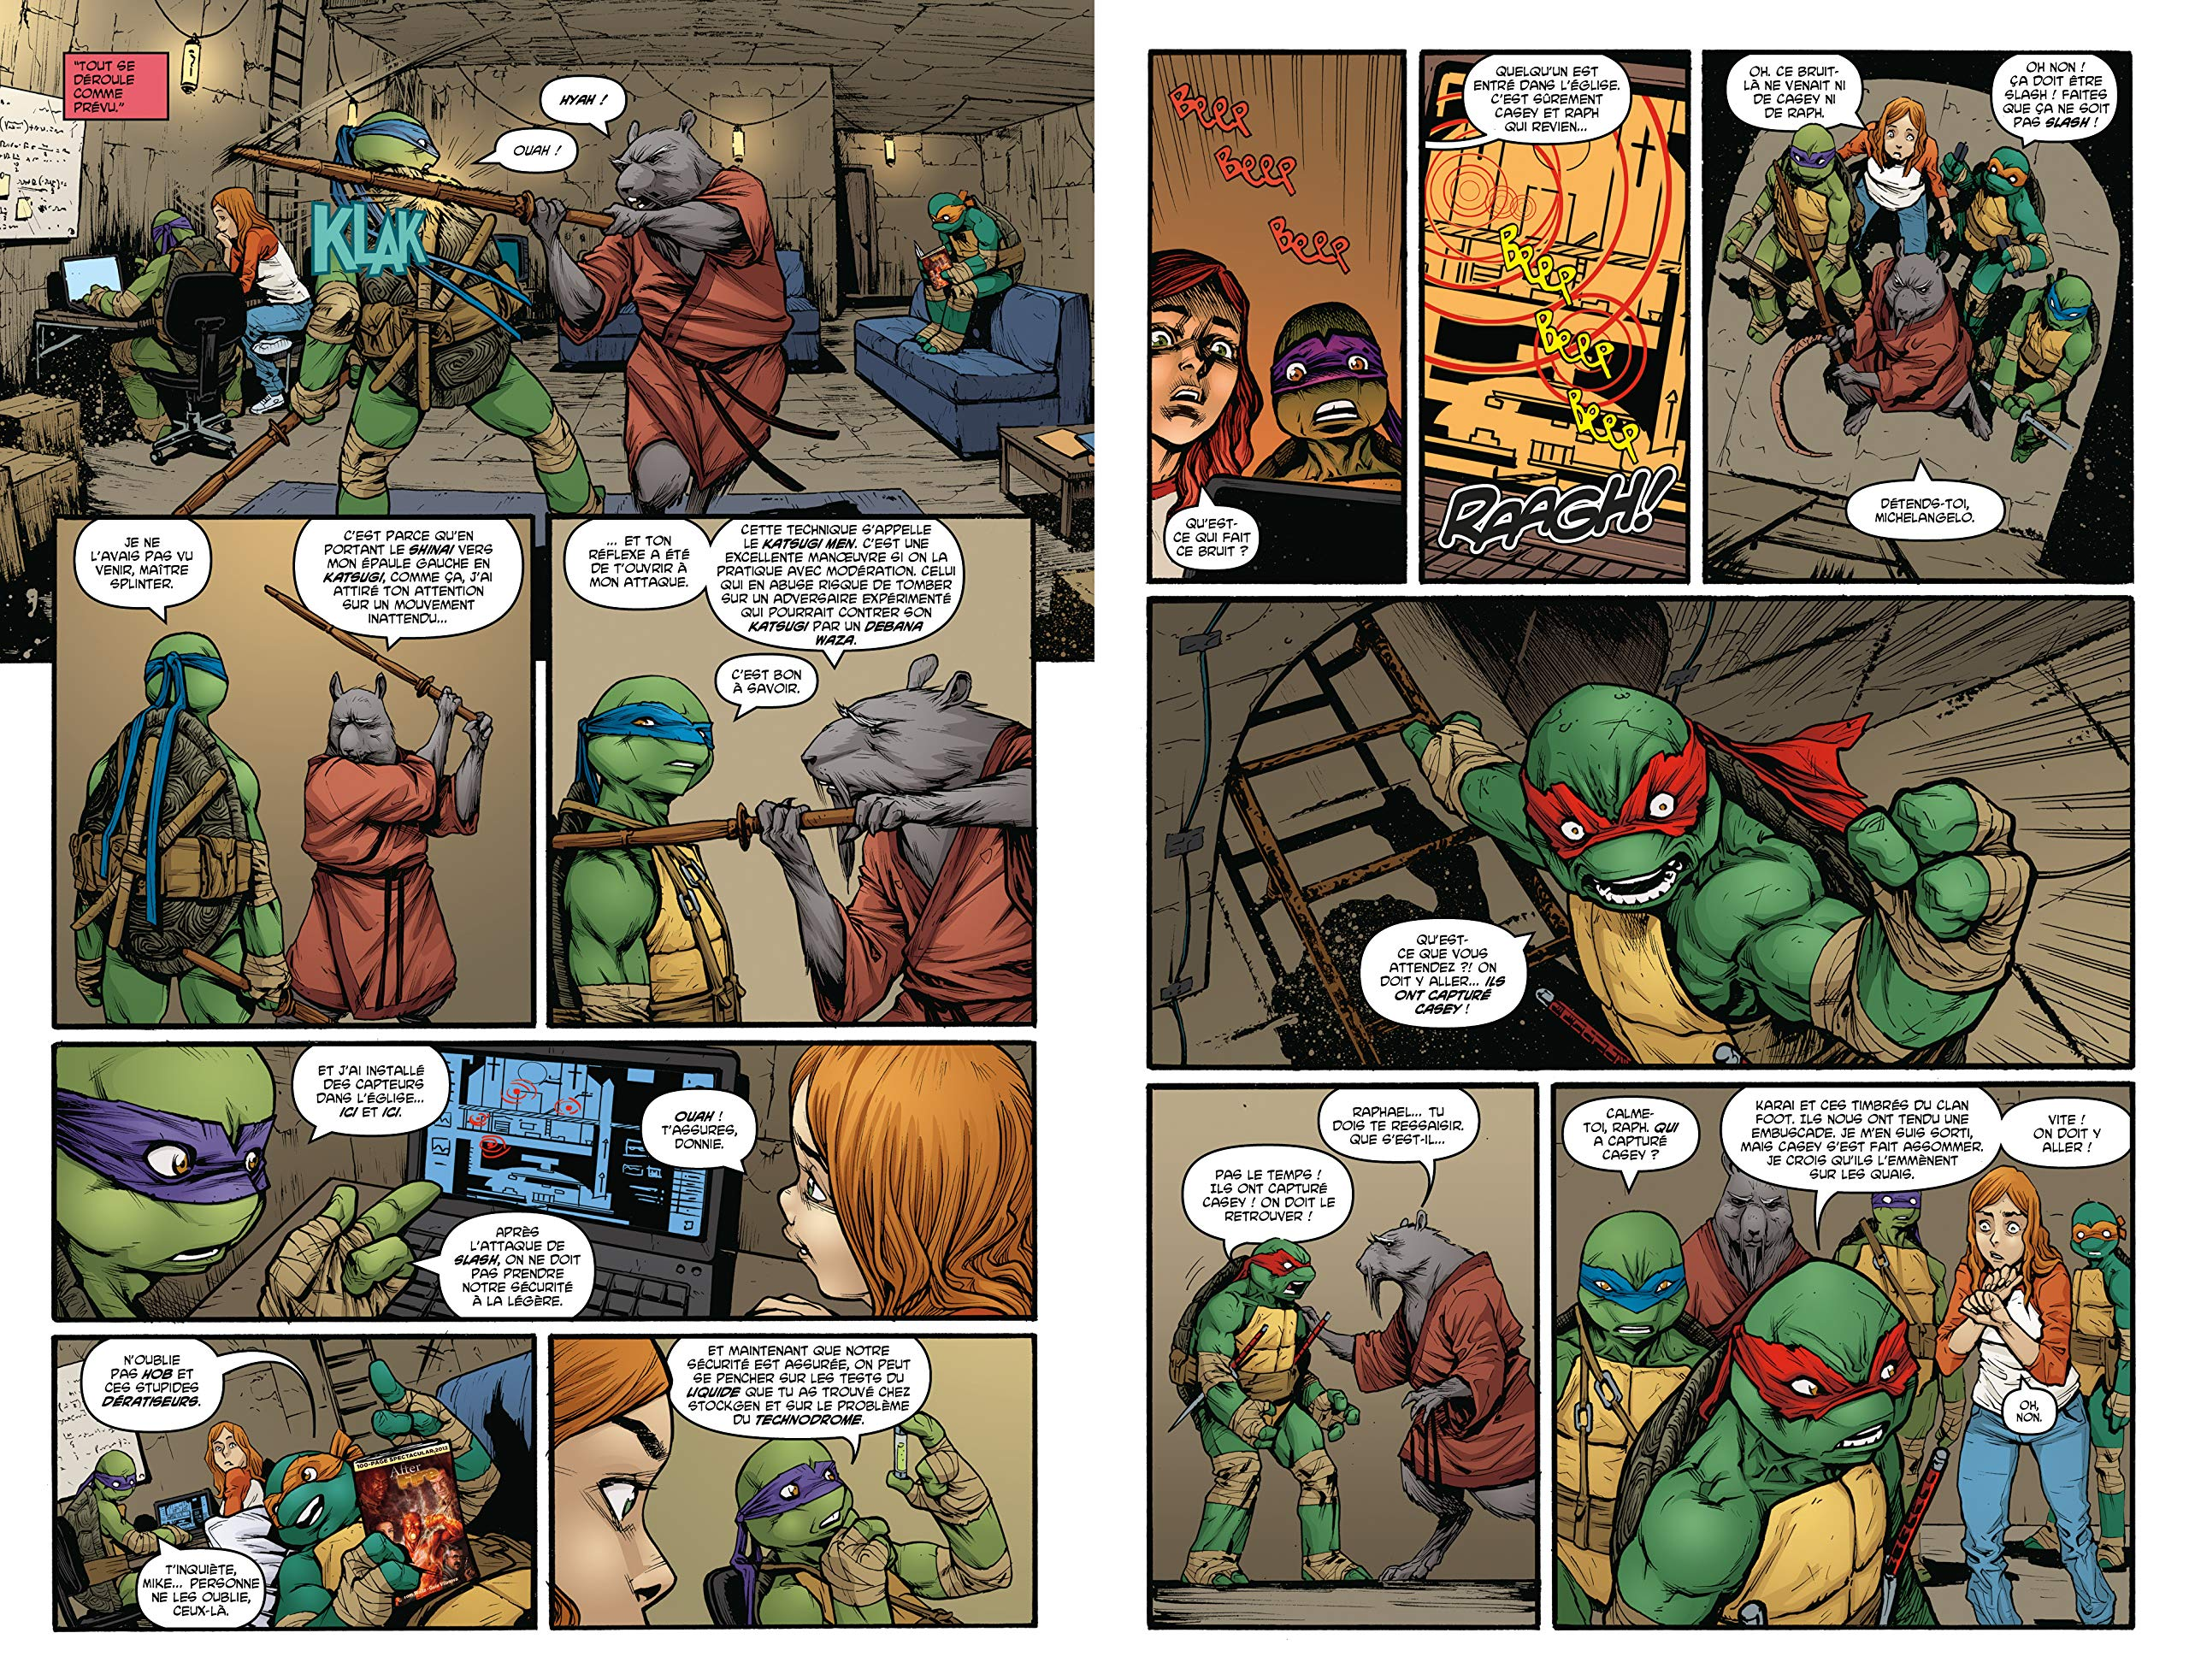 Teenage Mutant Ninja Turtles - Les tortues ninja, Tome 2 ...